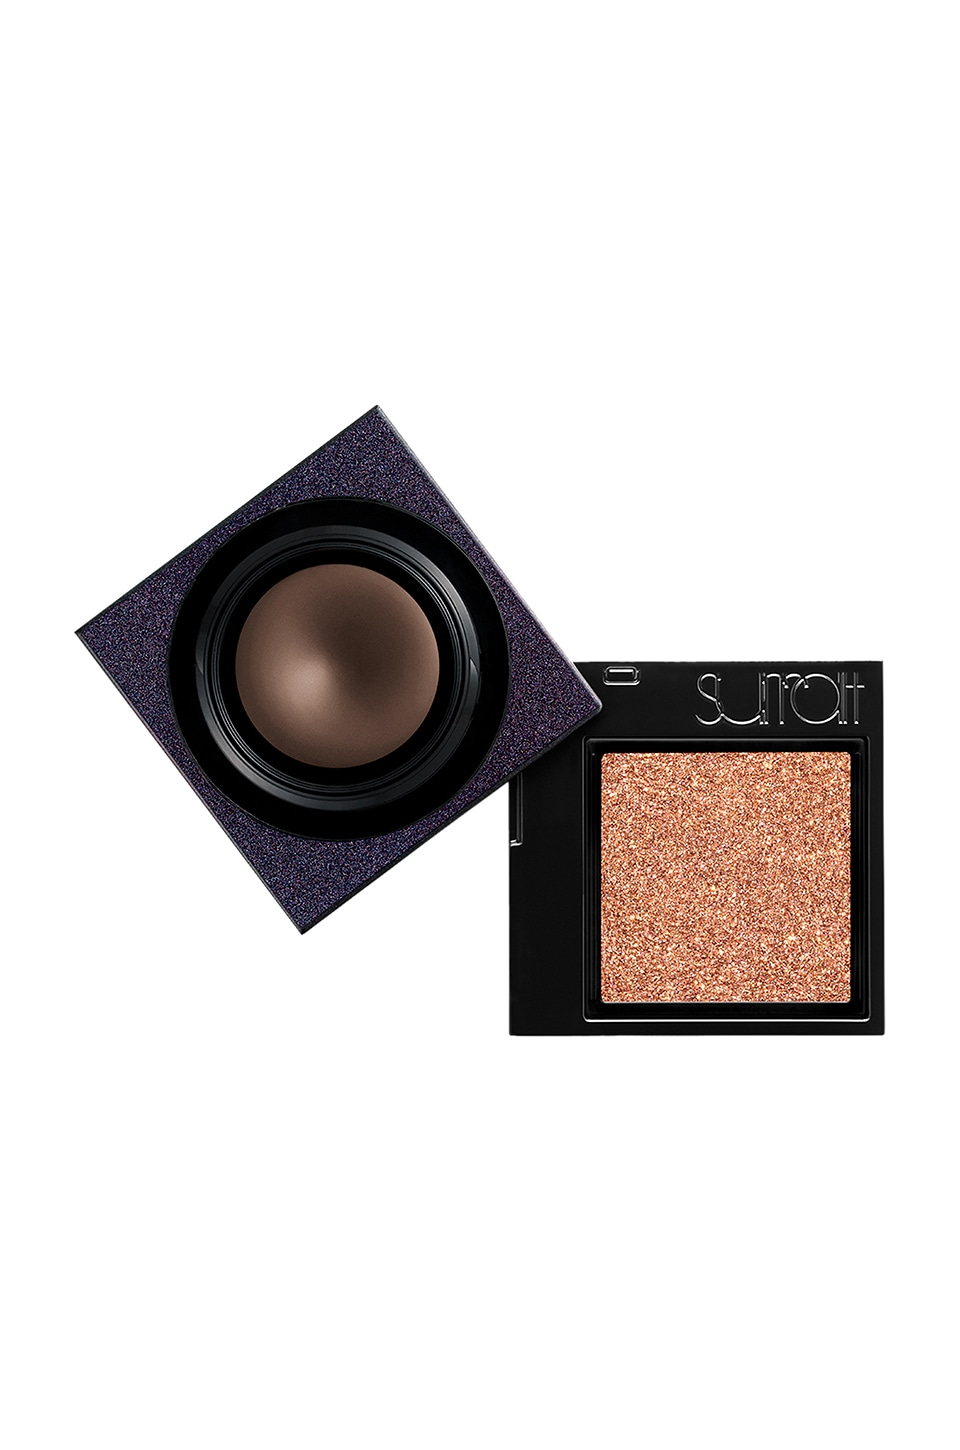 Surratt Prismatique Eyes Duo in Neutral Eyes